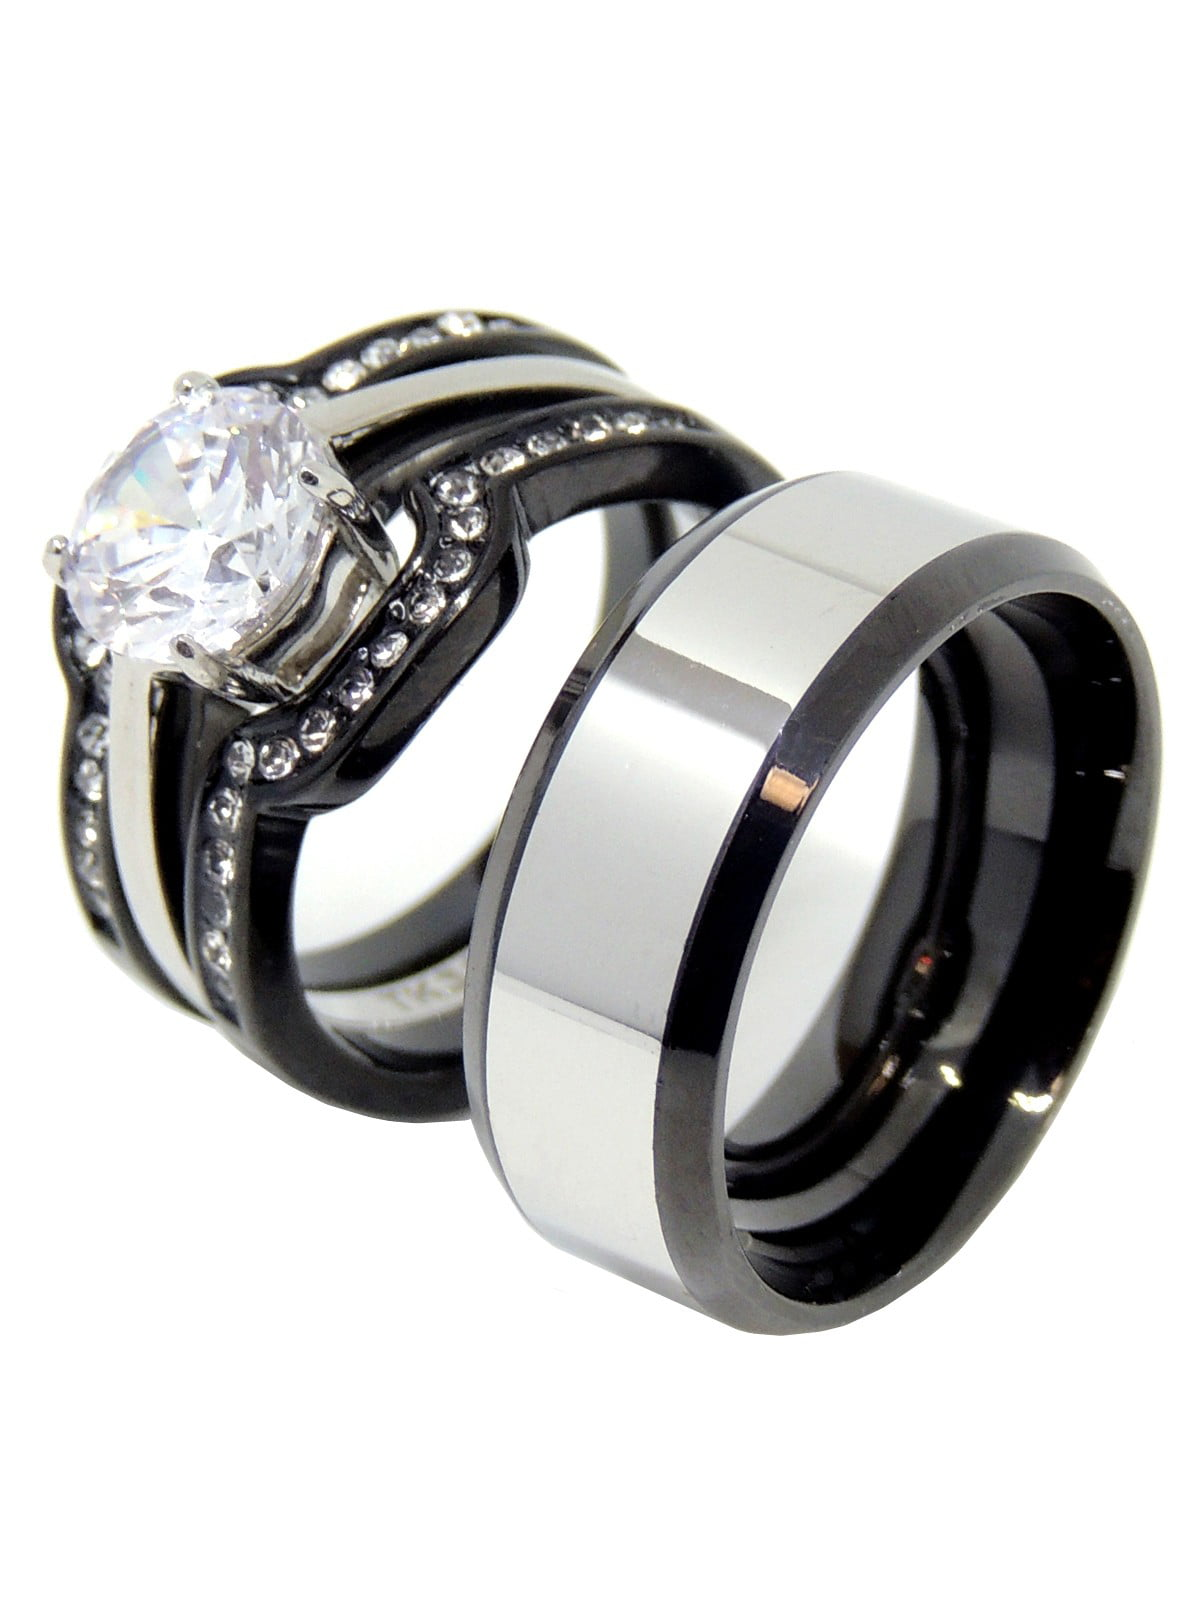 La Ny Jewelry His Hers Couple Ring Set Hers Two Tone Black